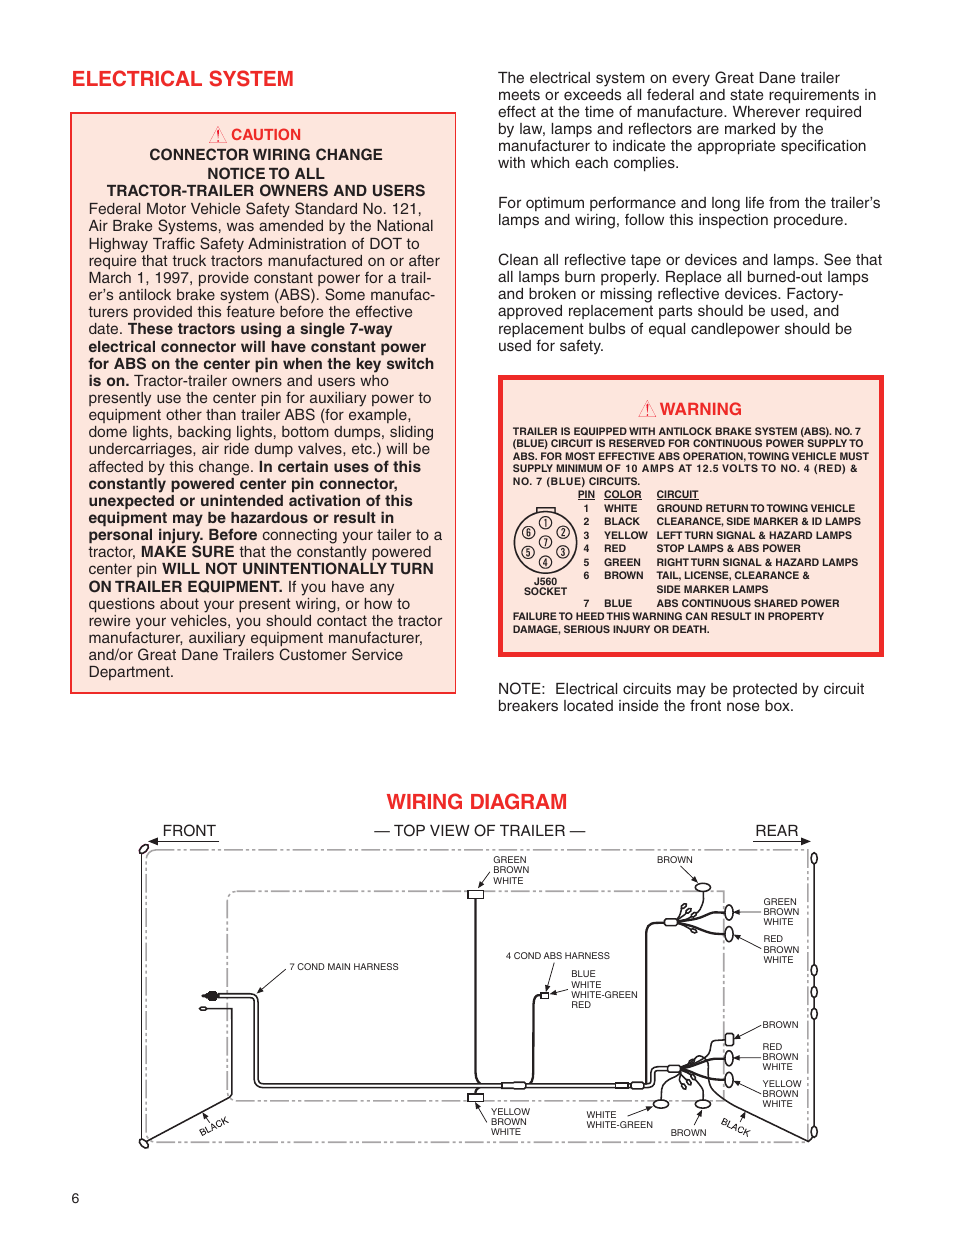 Electrical System Wiring Diagram Warning Great Dane 42101401 Trailer Plug Besides 7 Pin On User Manual Page 8 32